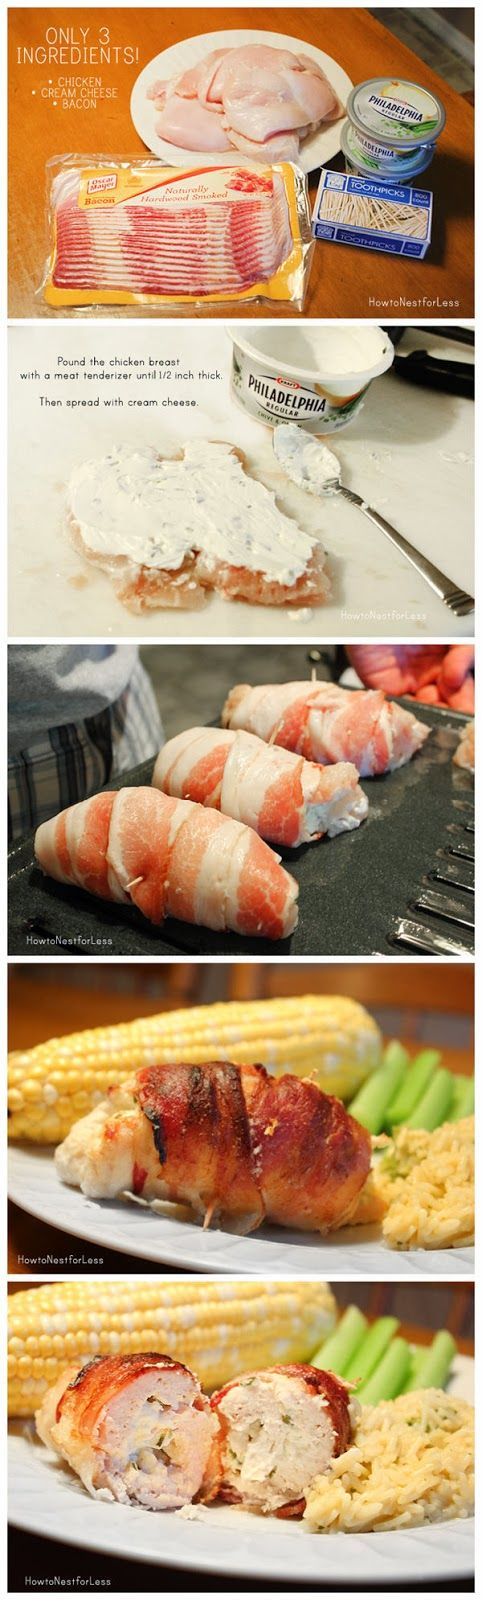 Stuffed Bacon Wrapped Chicken. I use Laughing Cow cheese wedges. Brown in pan, stick in 350 oven for 30 msn.